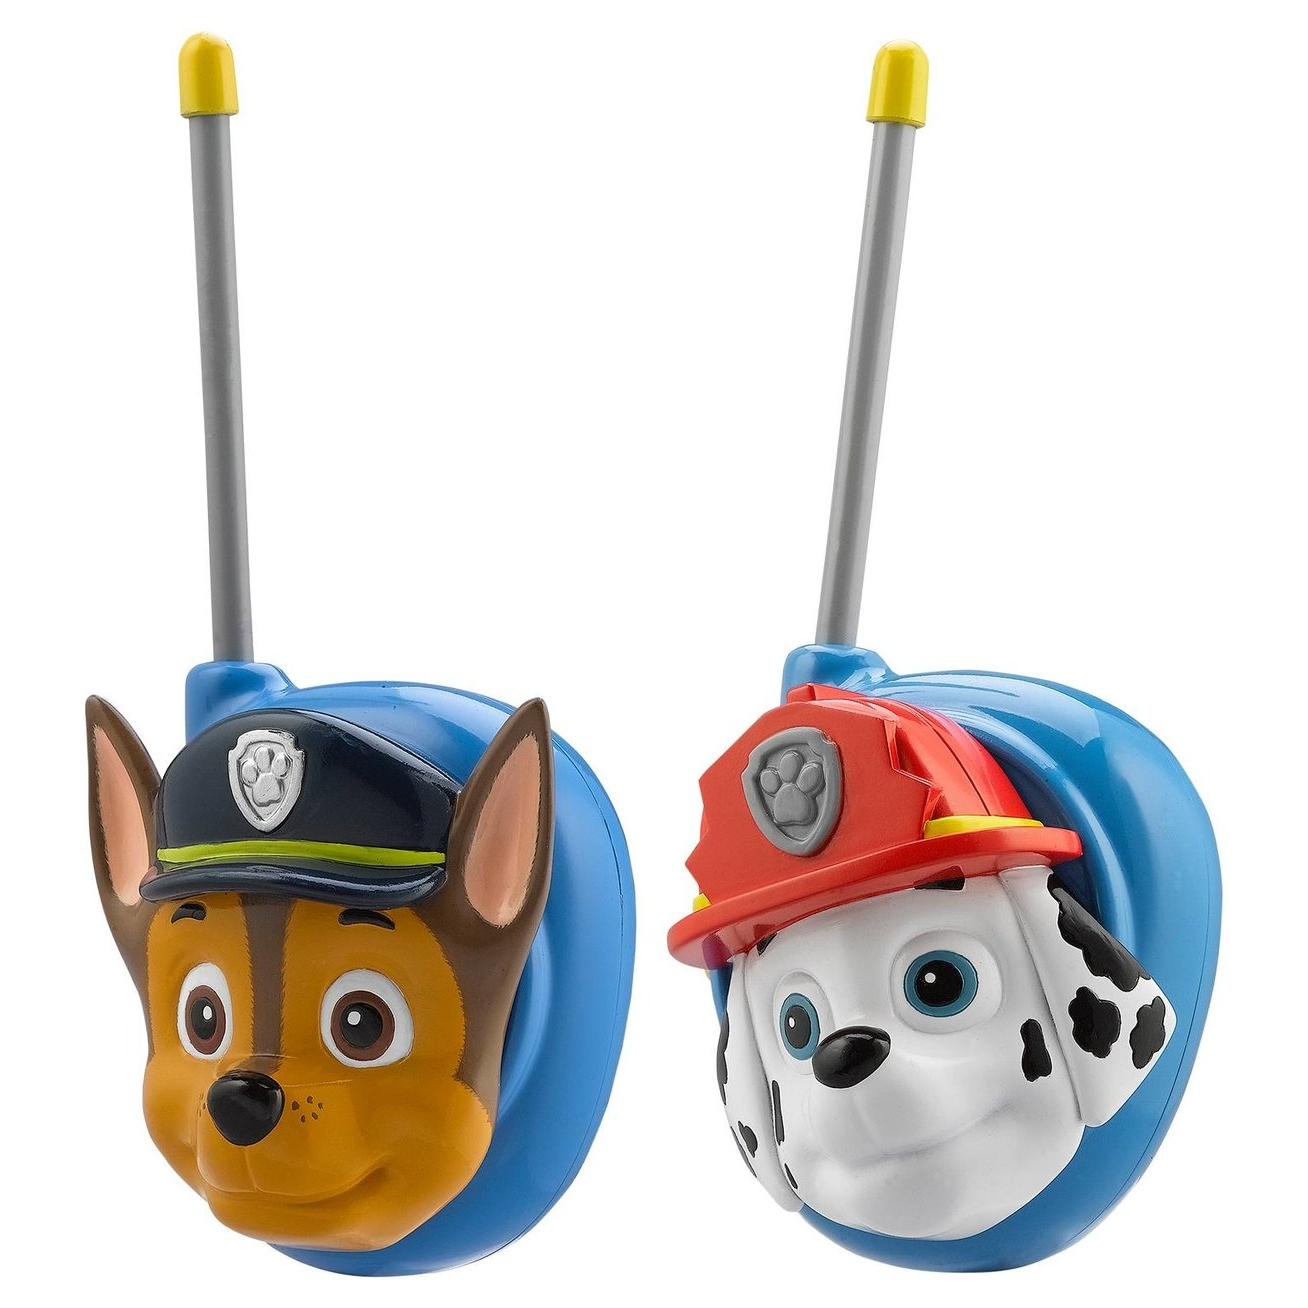 WALKIE TALKIES... - because they like to talk, especially through cool gadgets